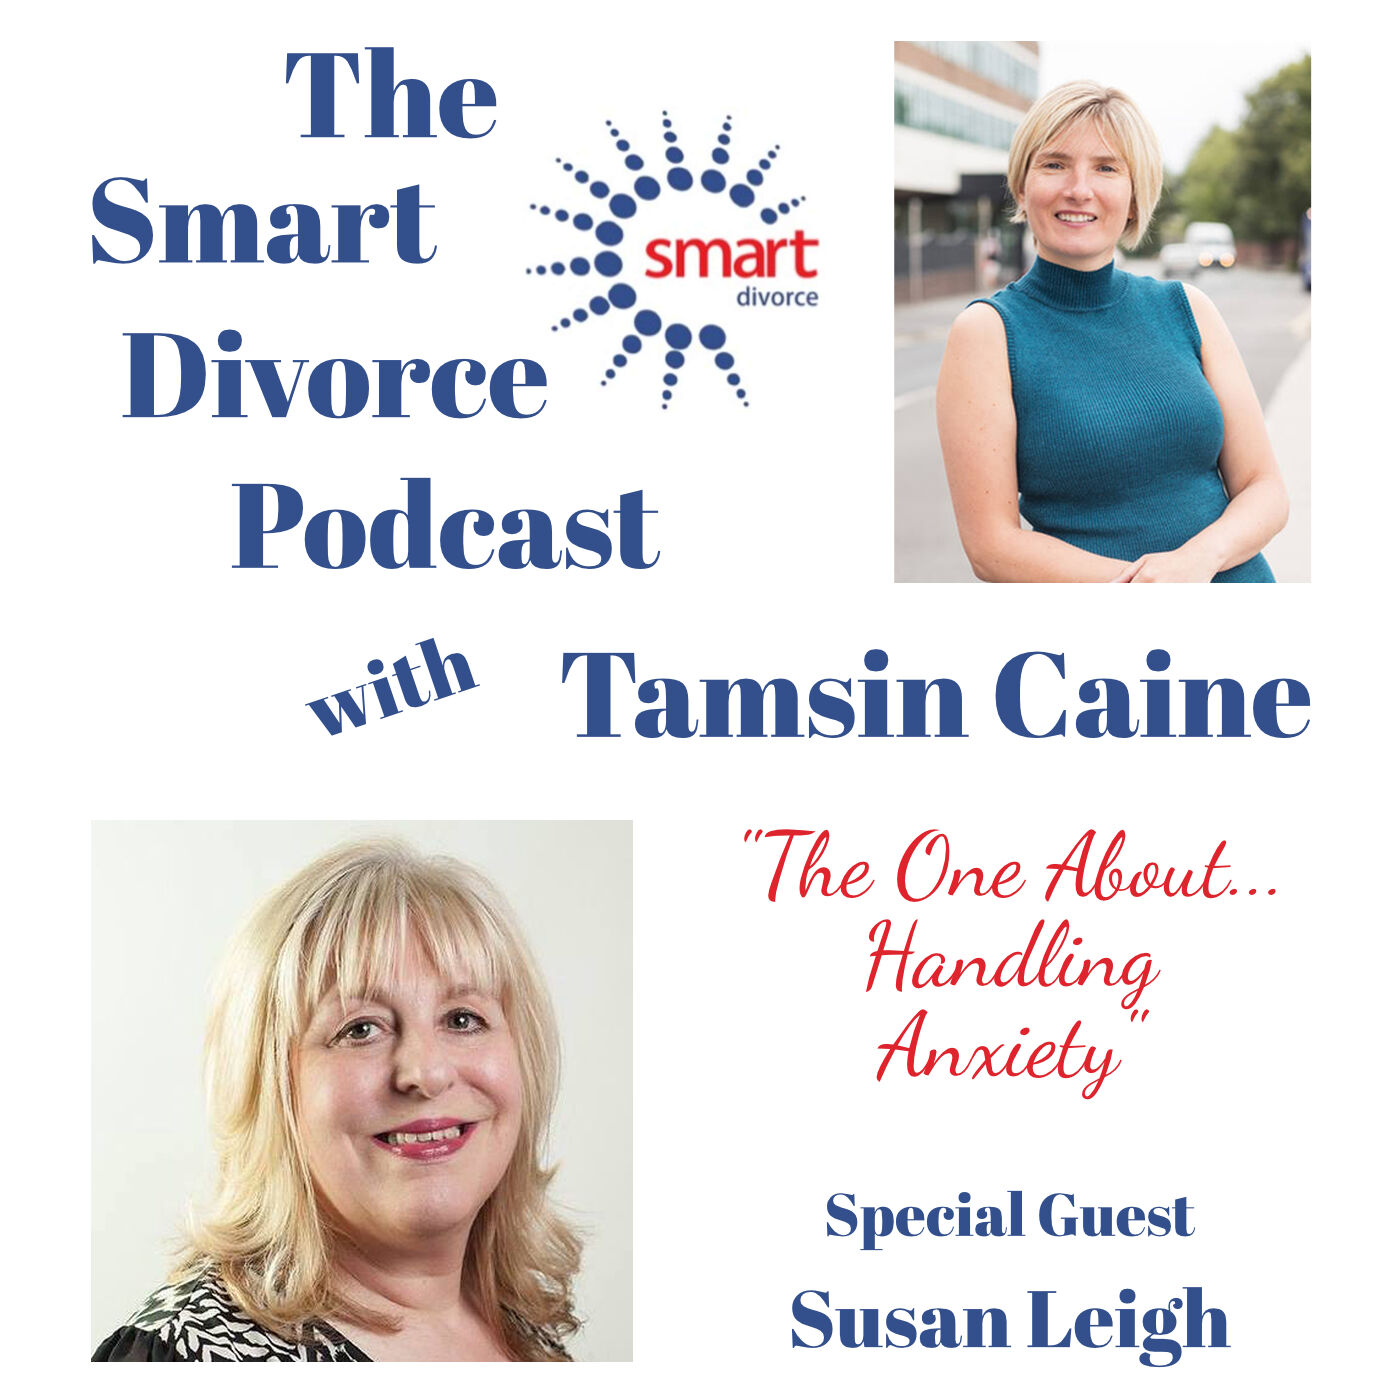 The Smart Divorce Podcast - The One About...Handling Anxiety